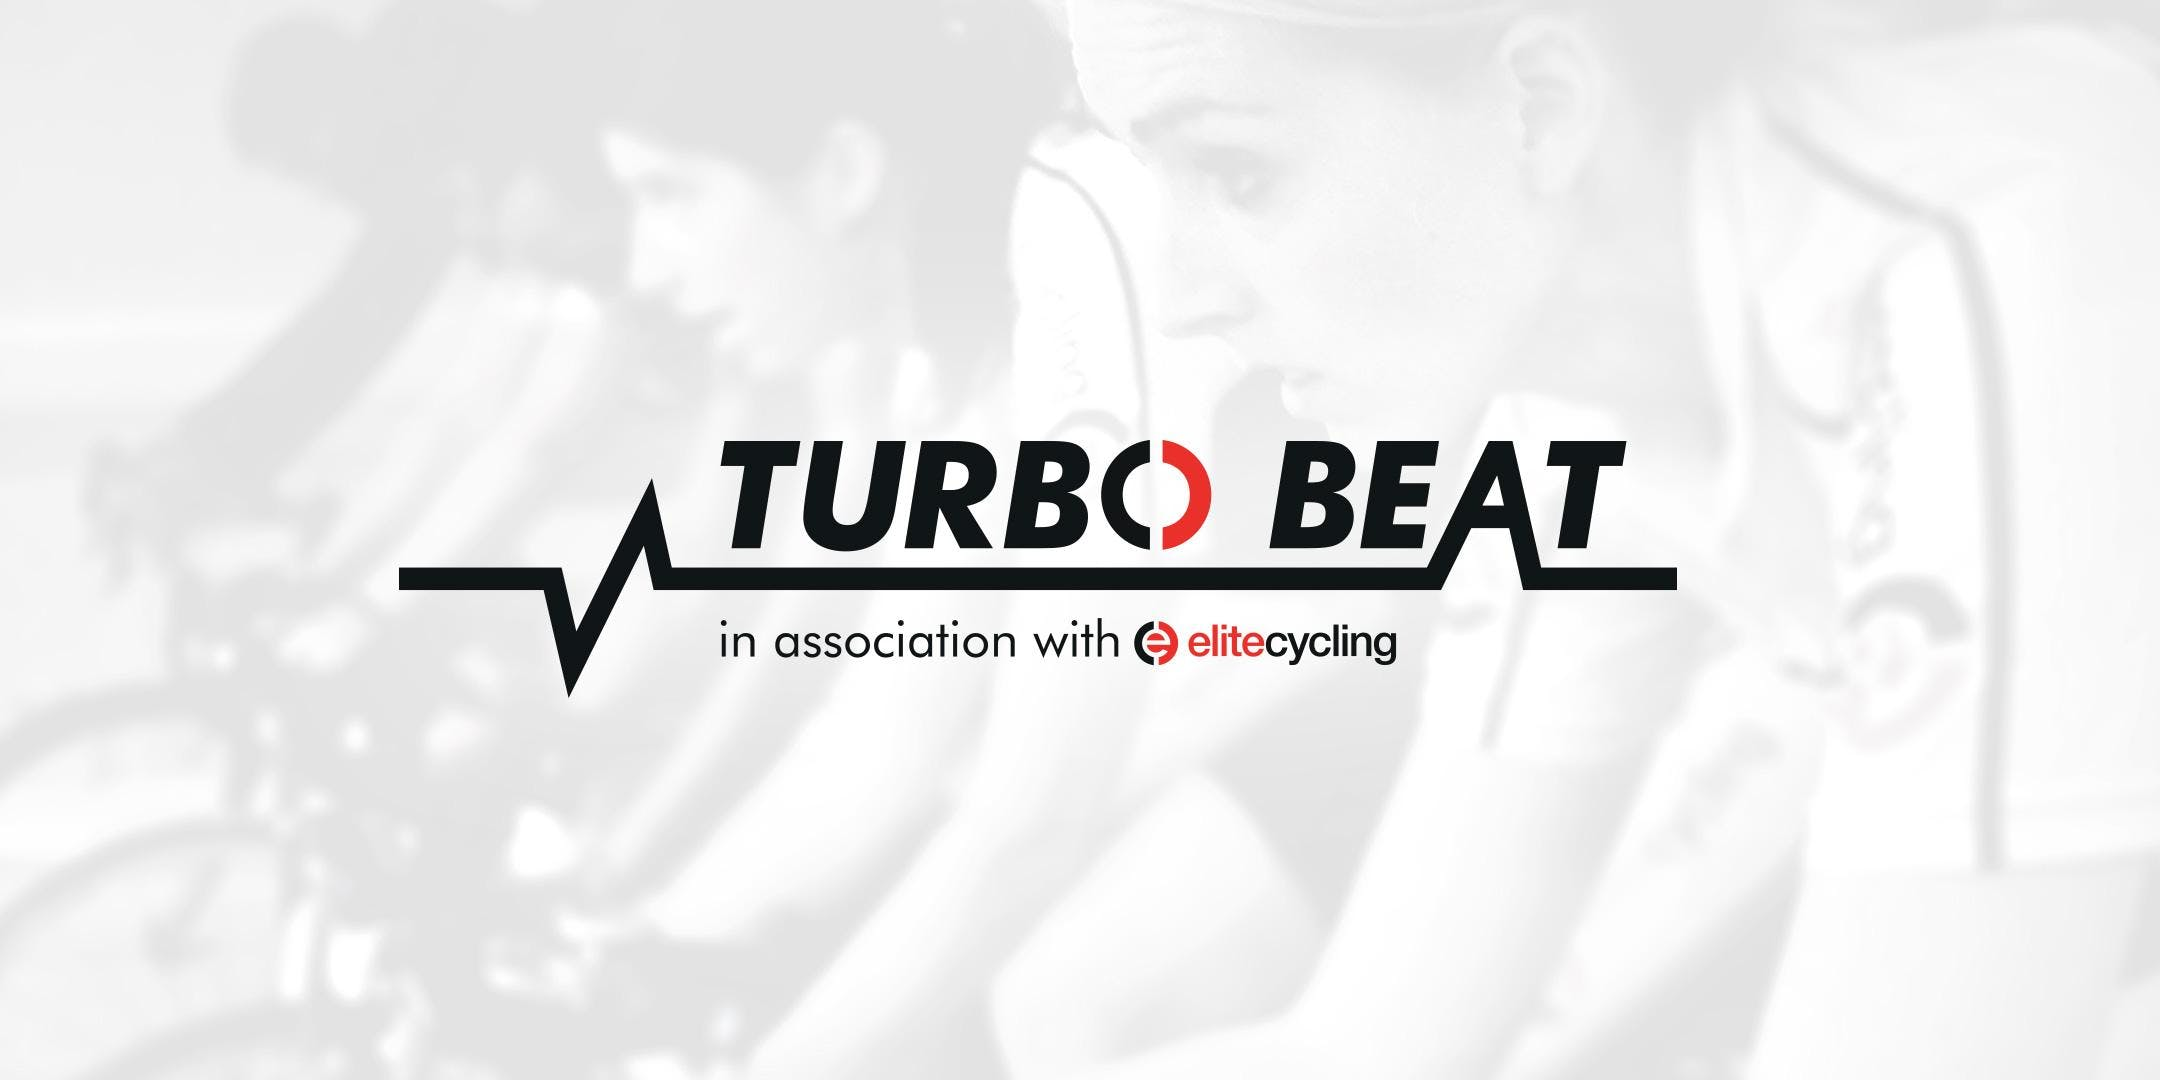 Crystal Palace - Turbo Beat Block 4 (Tuesday) - from 12/02/19 for 3 weeks